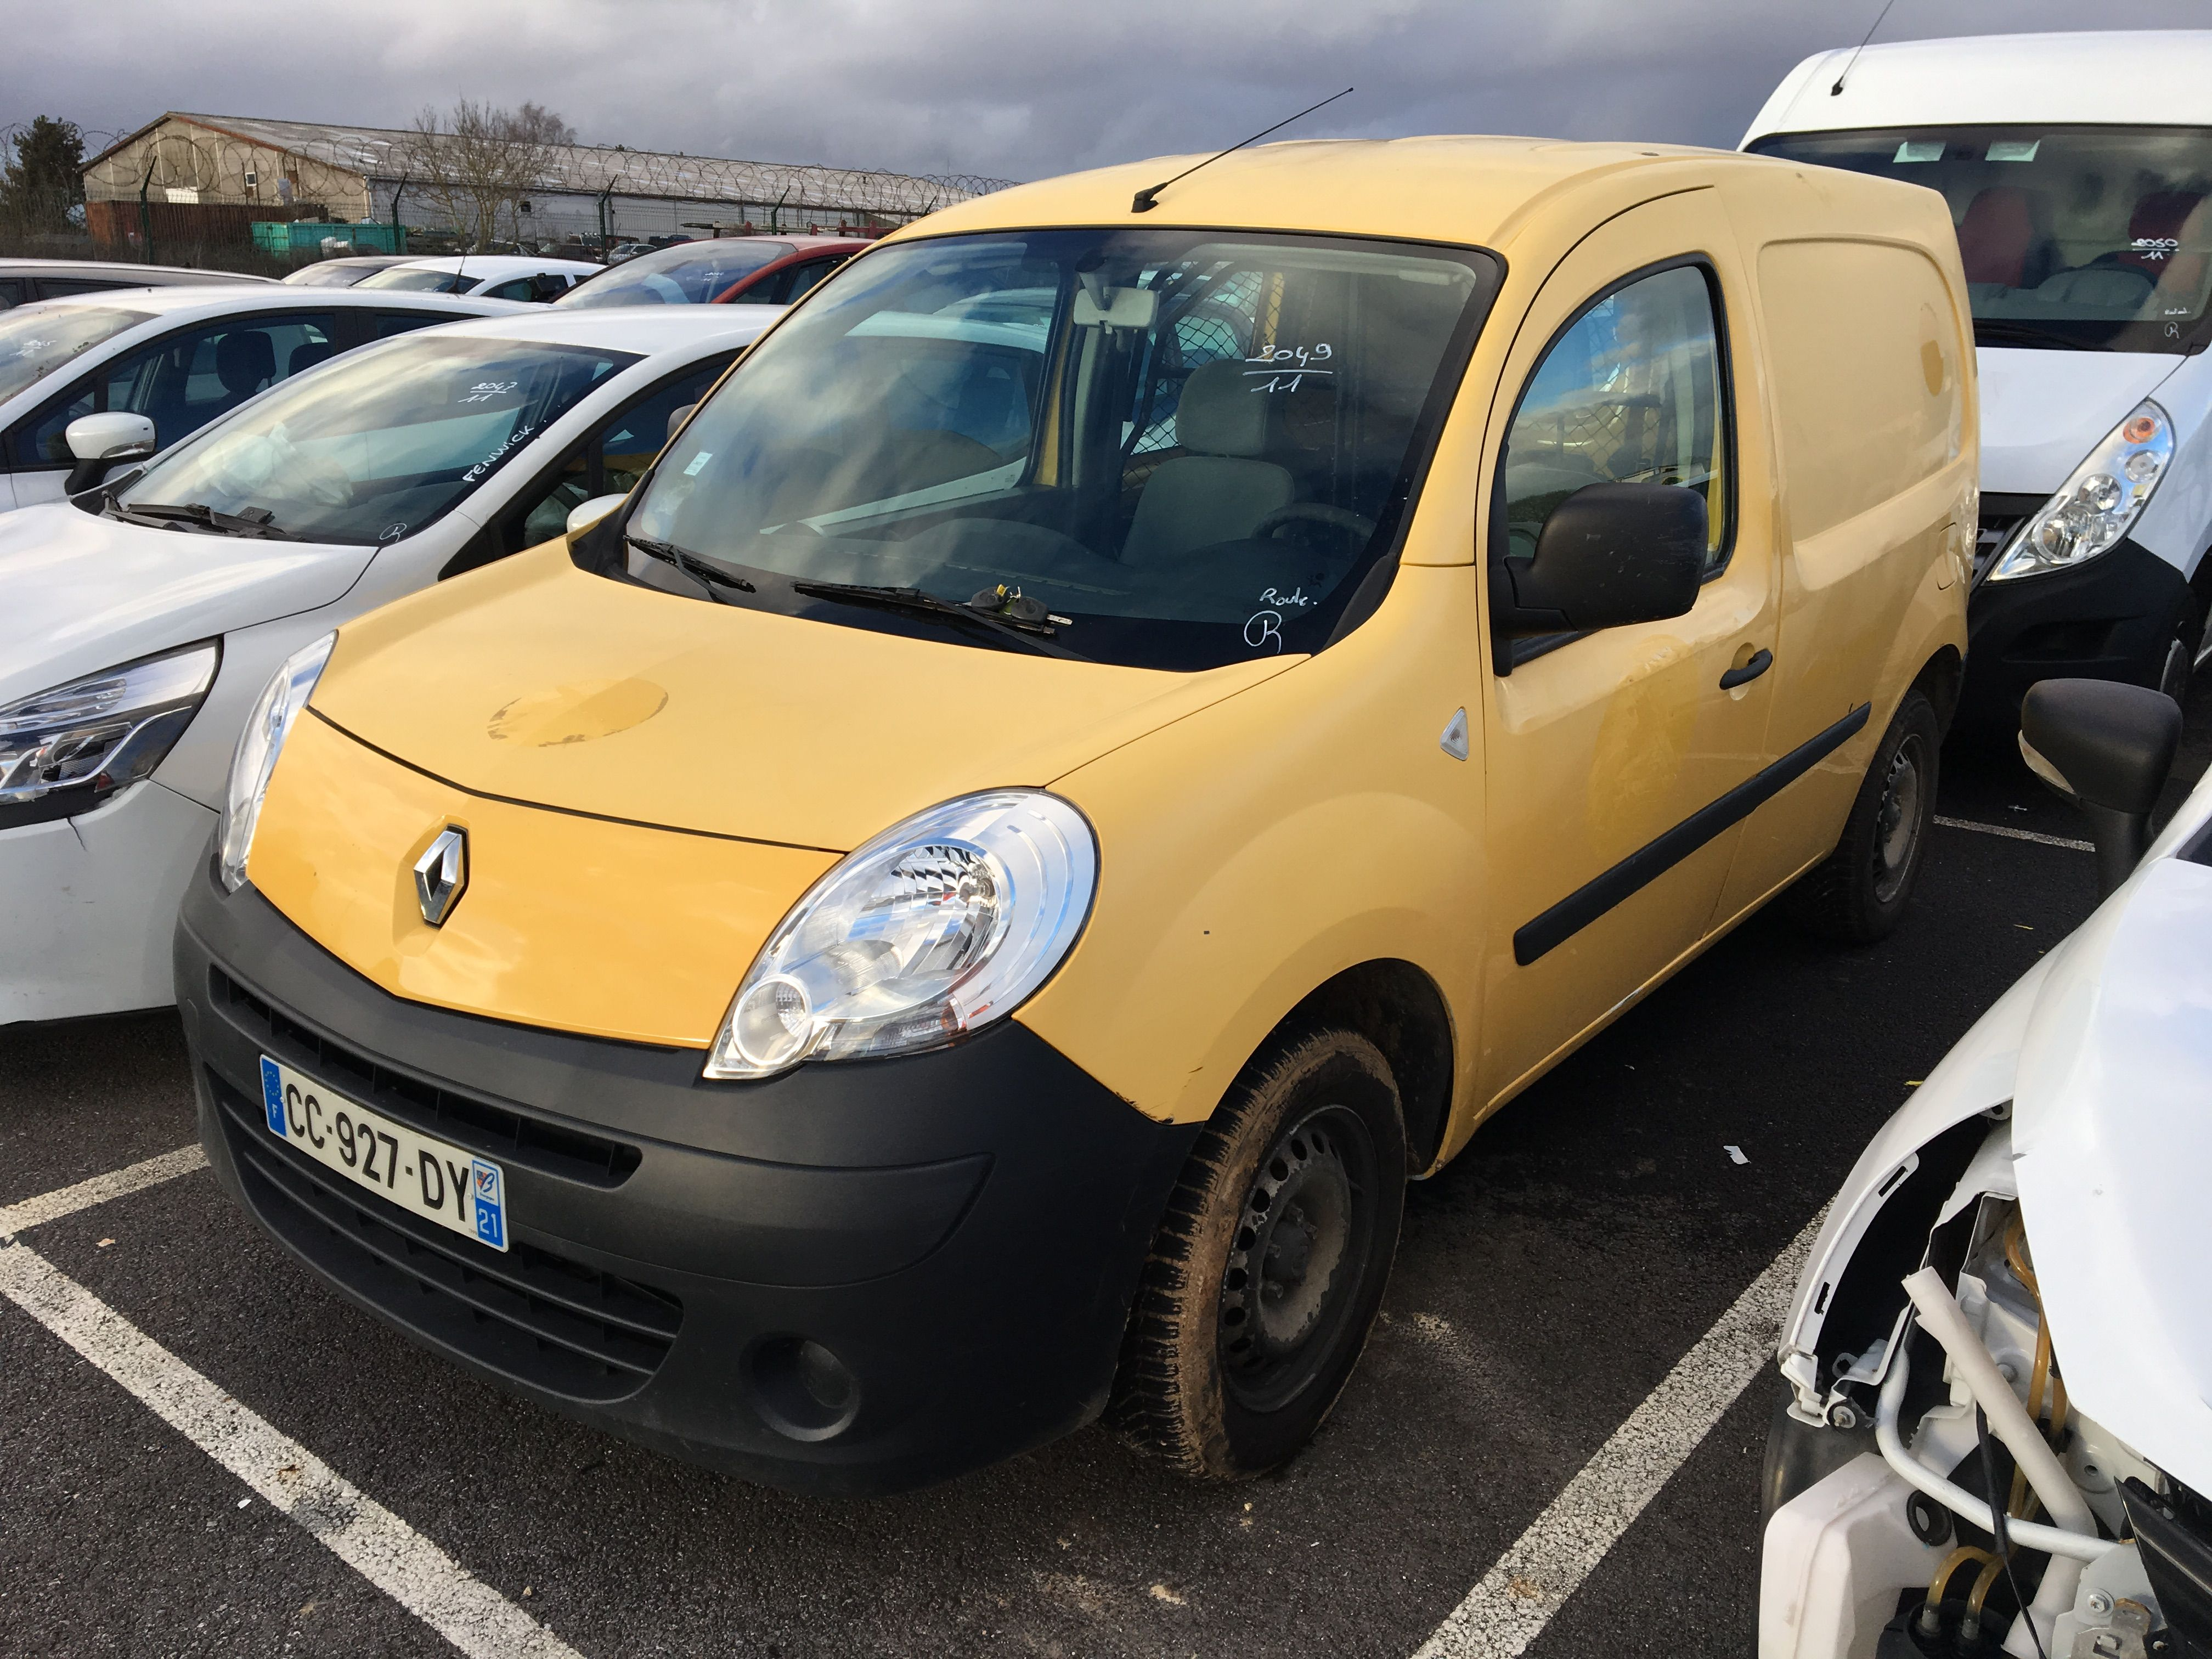 renault kangoo express kangoo express l1 1 5 dci 75 eco2 confort beauvais alcopa auction. Black Bedroom Furniture Sets. Home Design Ideas